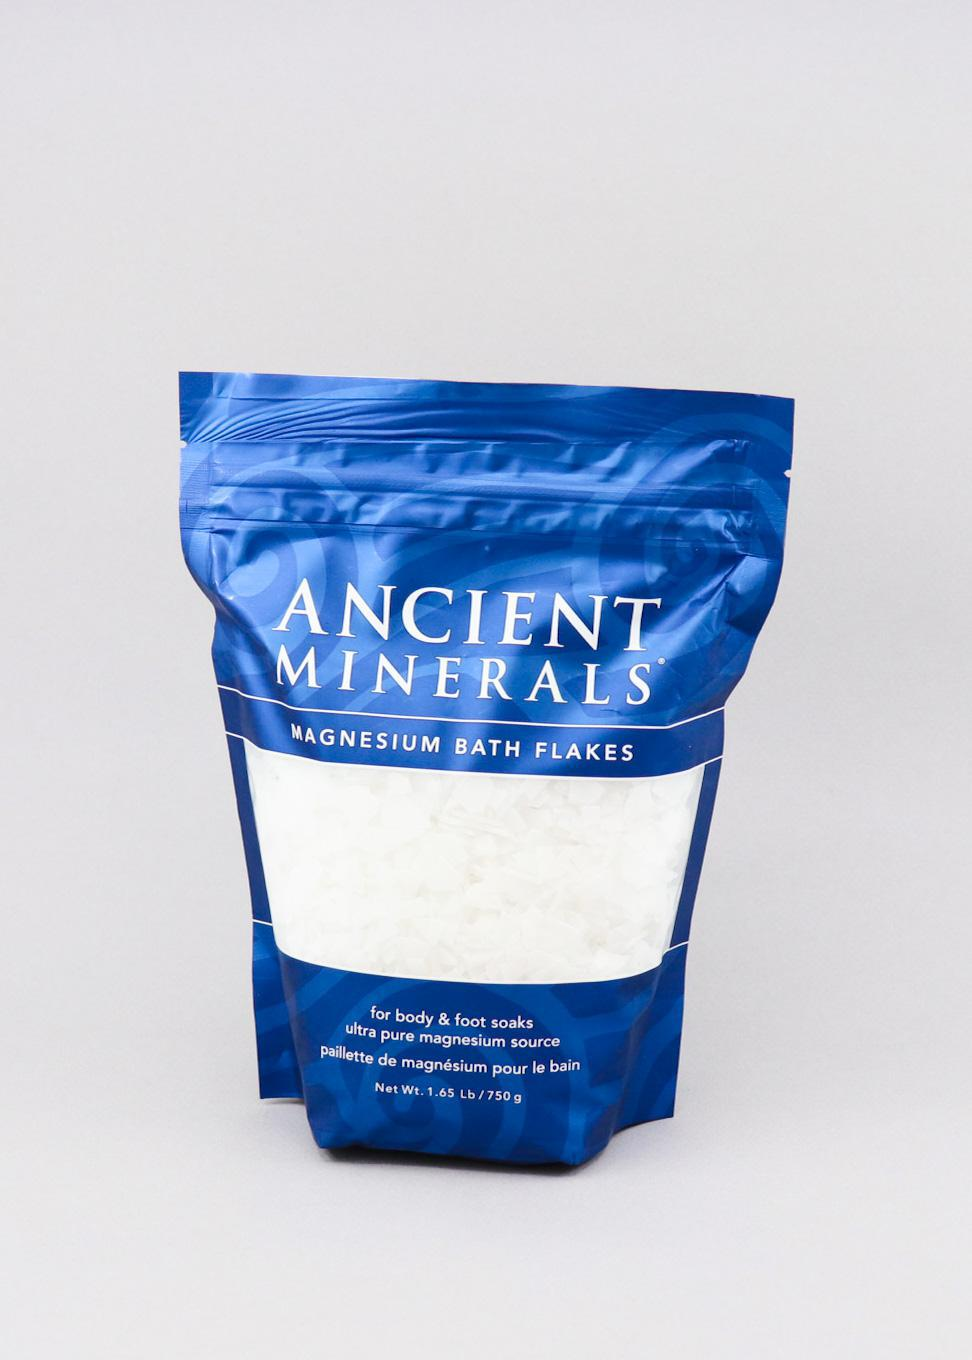 Ancient Minerals - 1lb Magnesium Bath Flakes